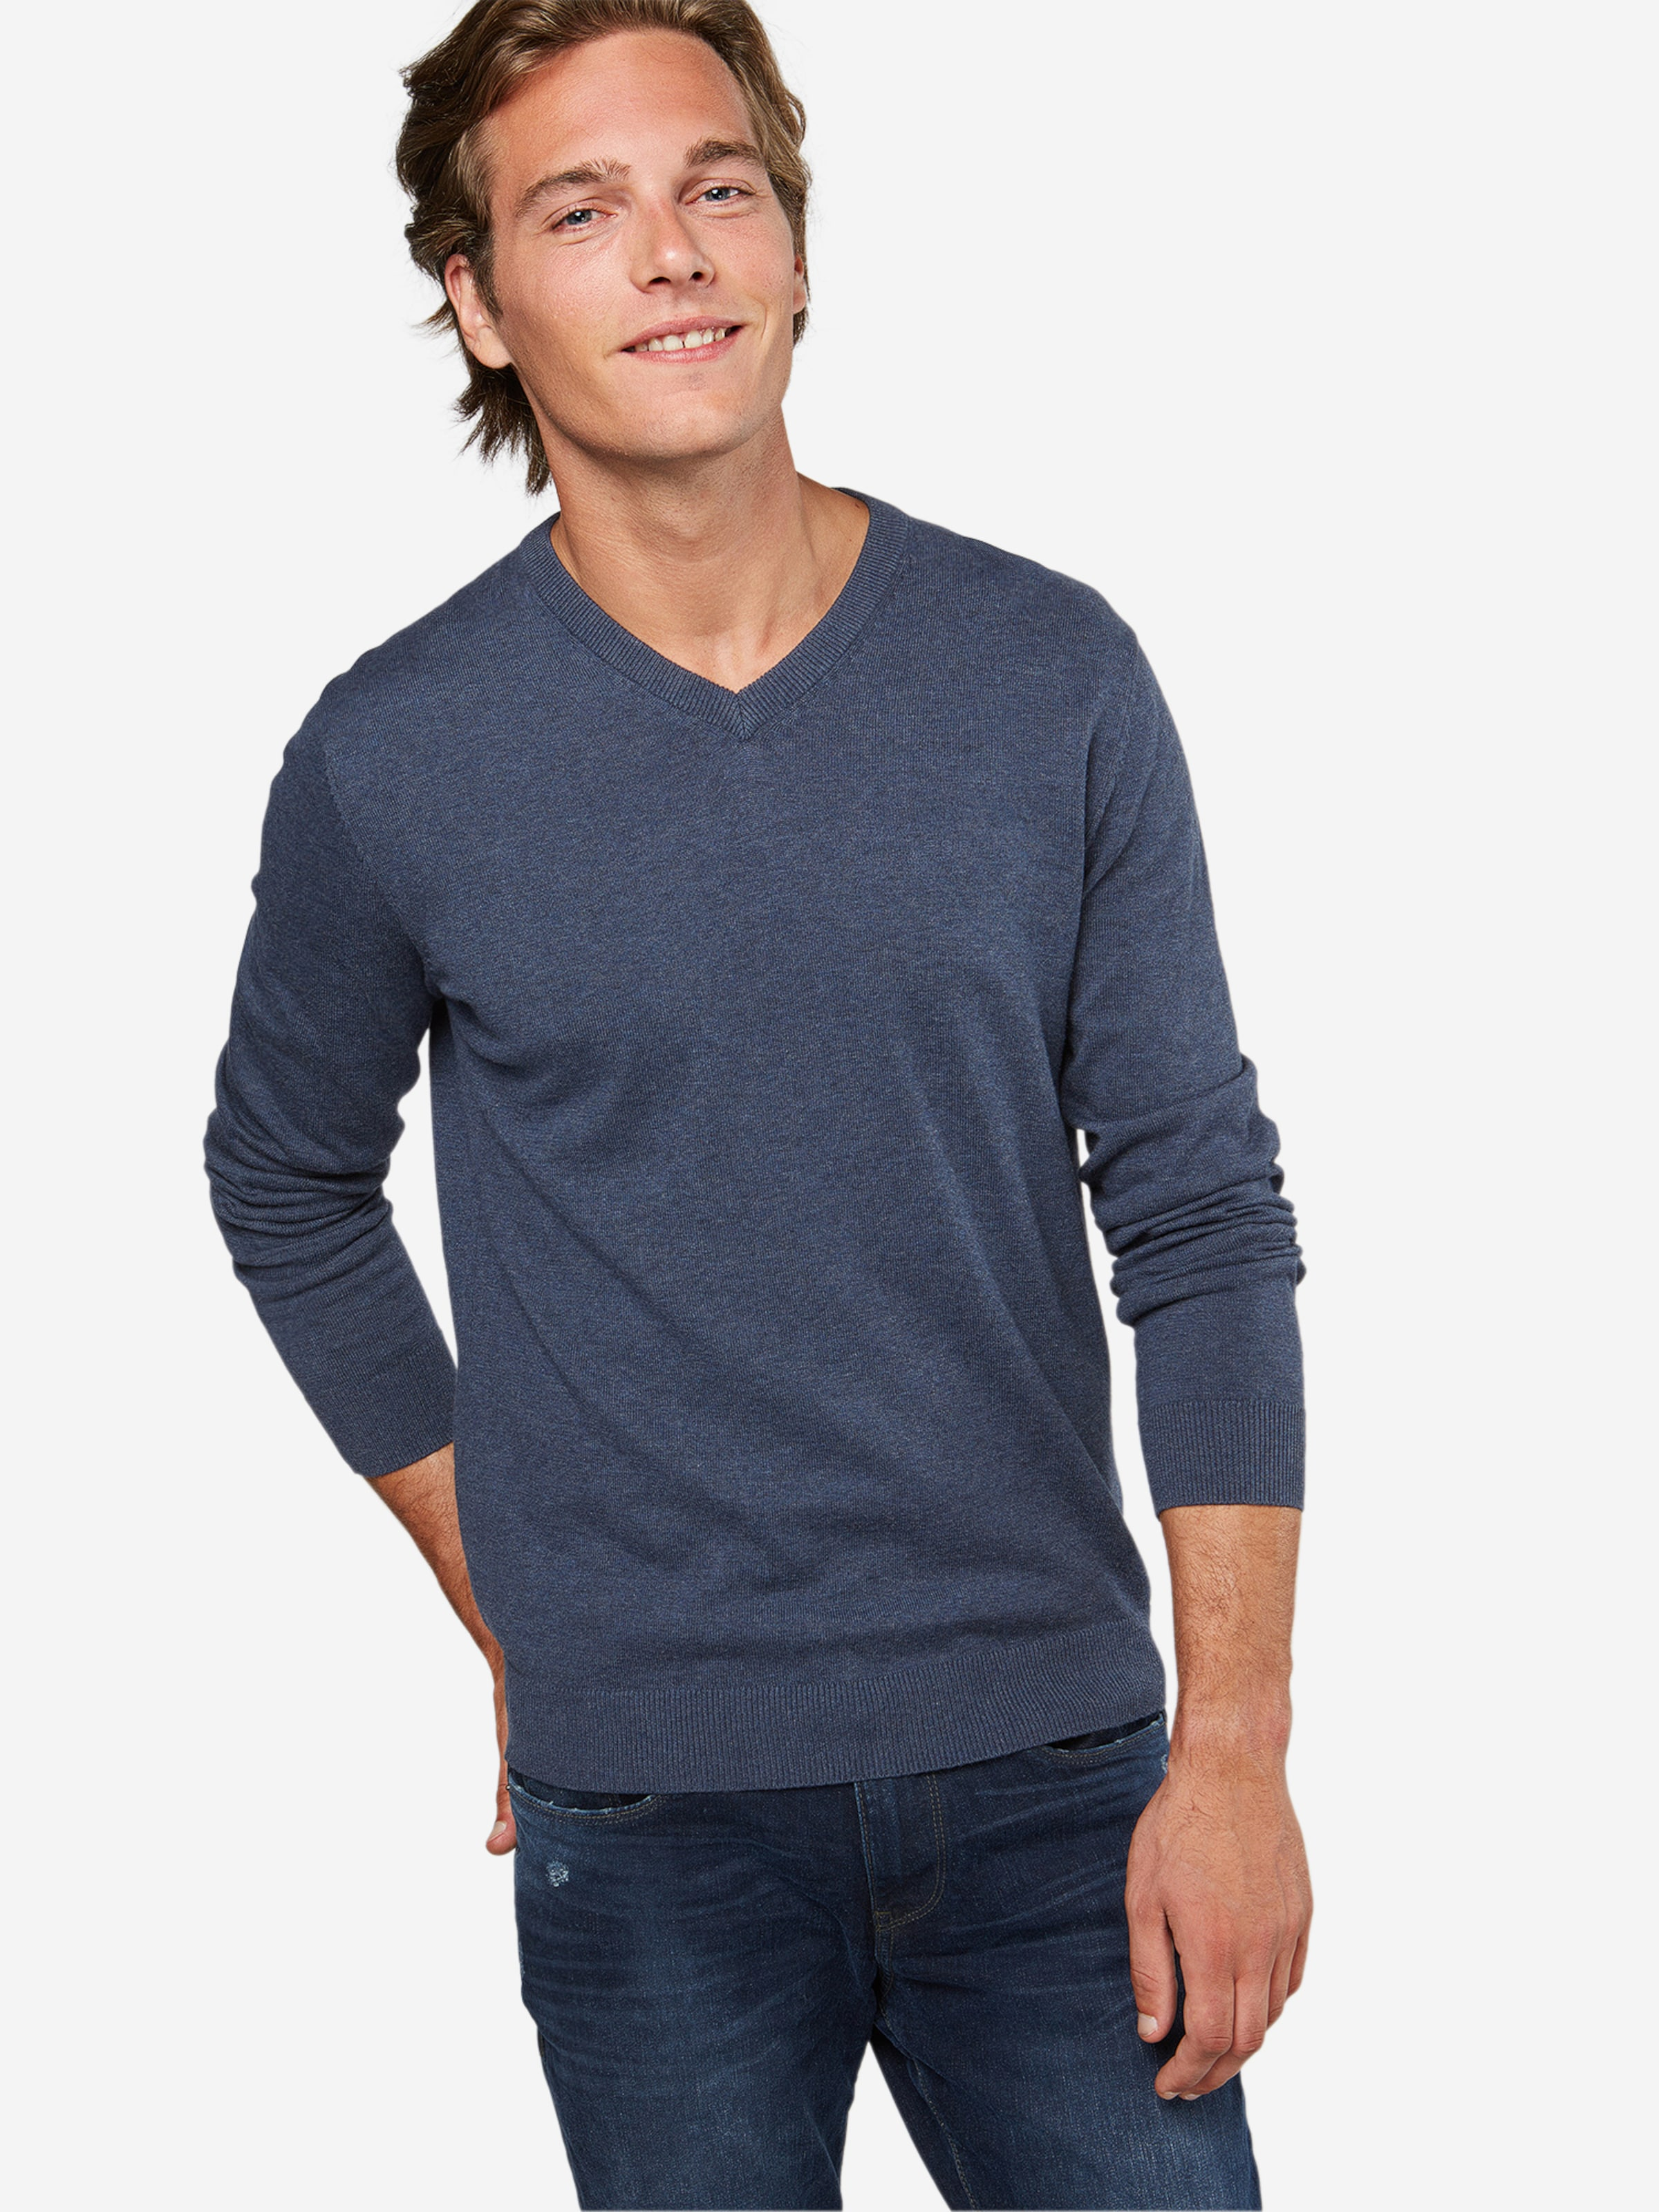 En Esprit over 'basic Co Pull Marine V nk' v0wN8mn